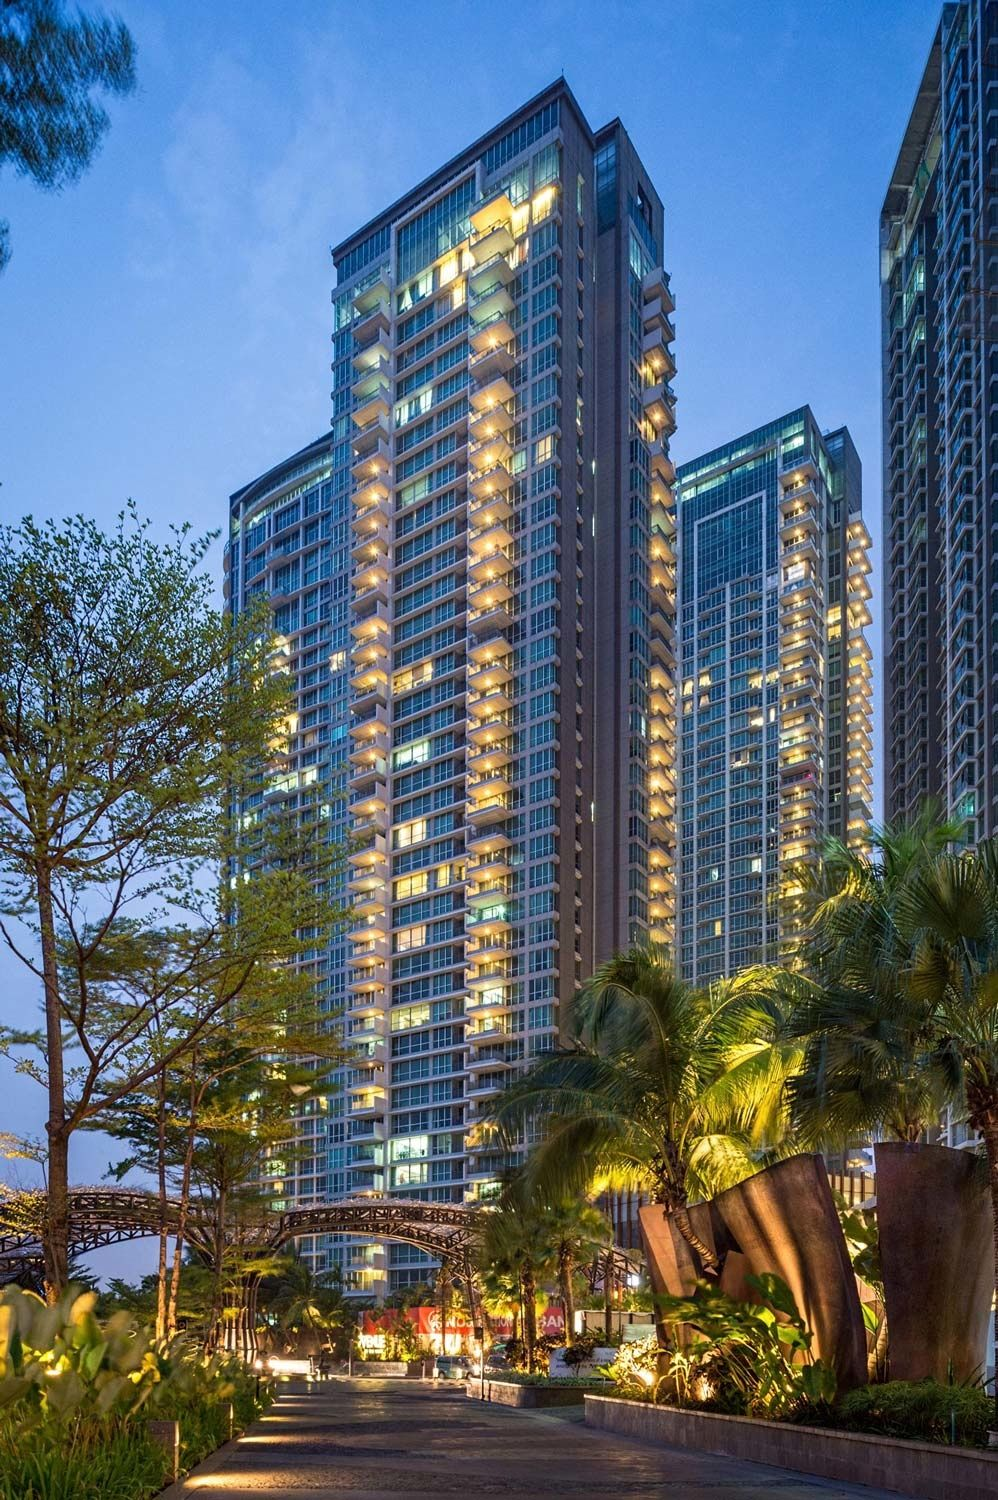 Kemang Village Apartments A Mix Used Developement By Lippo Designed Dpa Singapore